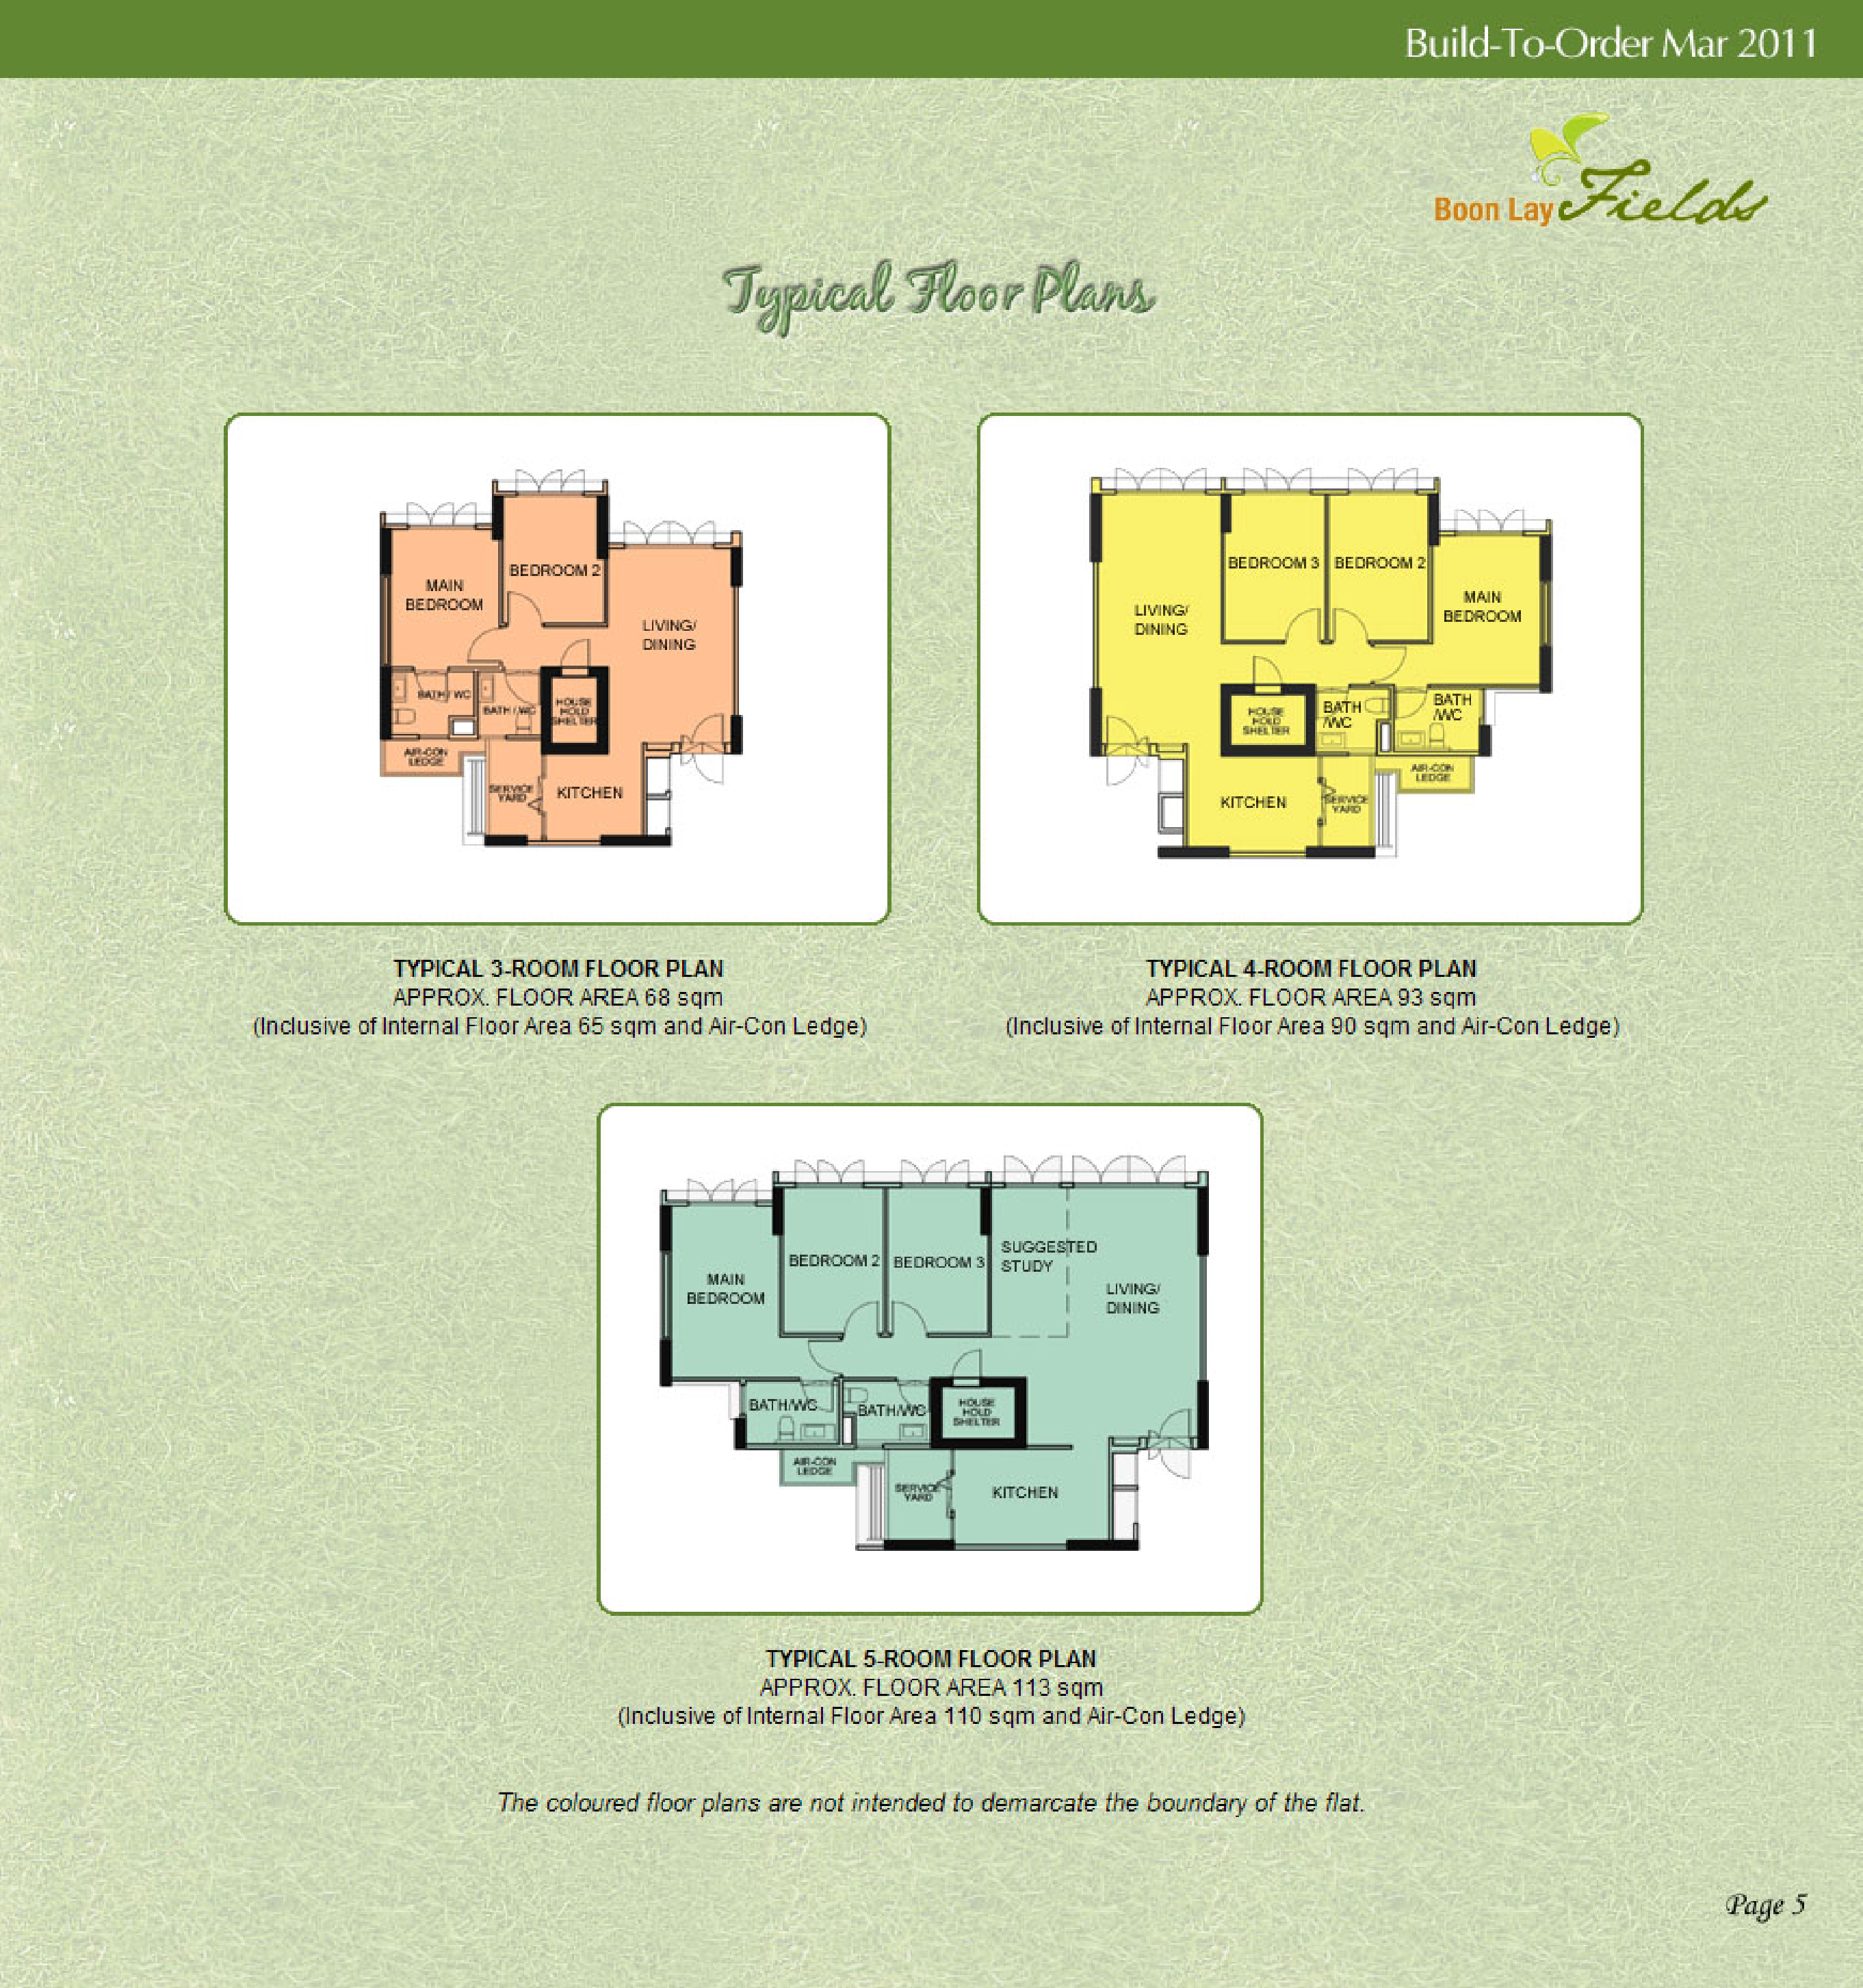 Hdb Boon Lay Fields Bto Launched In March 2011 Site Plan And Floor Plans Around Singapore Fengshui Geomancy Net